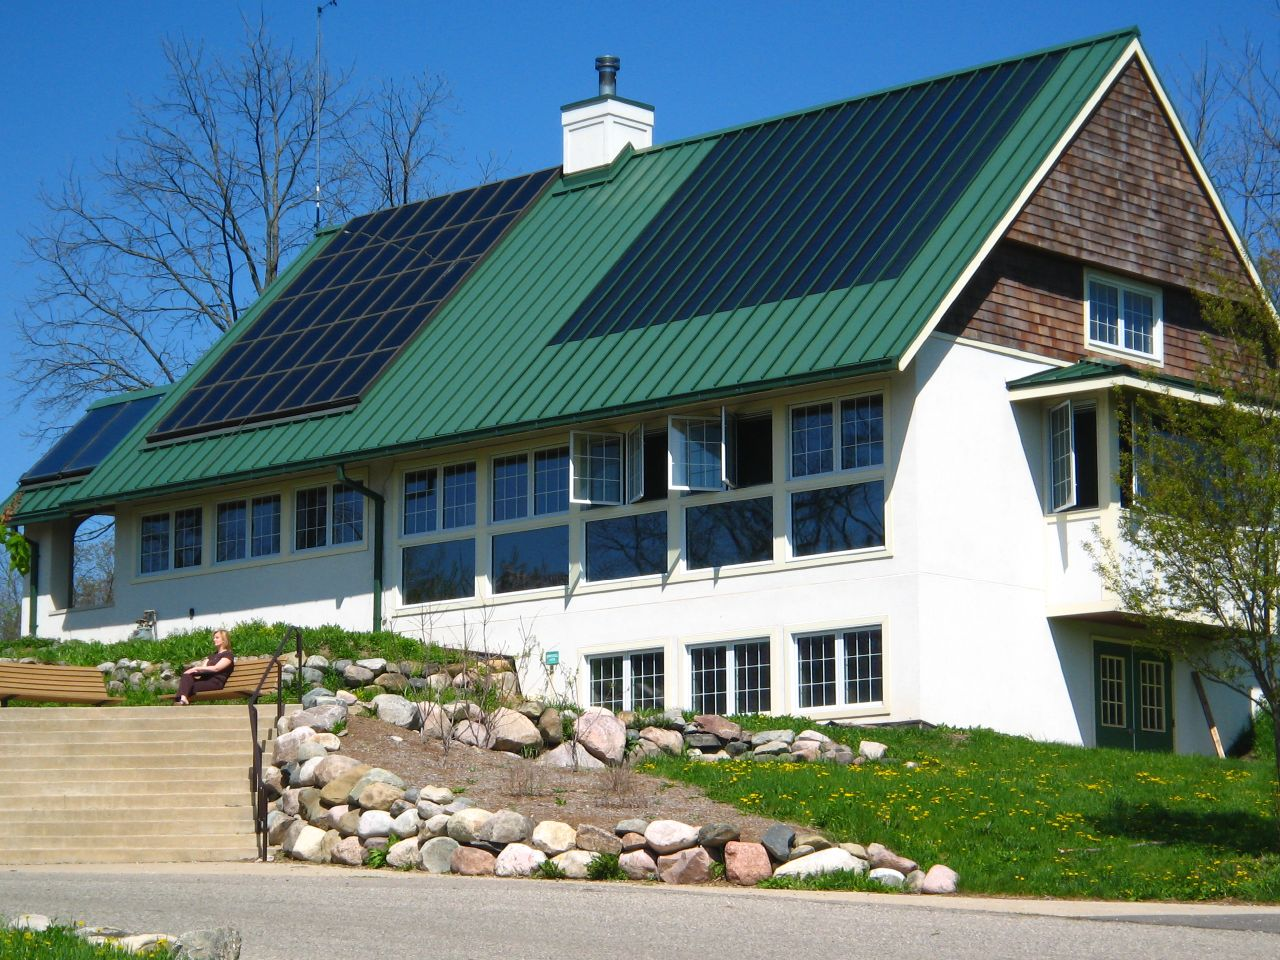 house with roof showcasing a standard solar panel with many separate cells on top of the roof and a one panel that mimics the long, straight roof tiles.